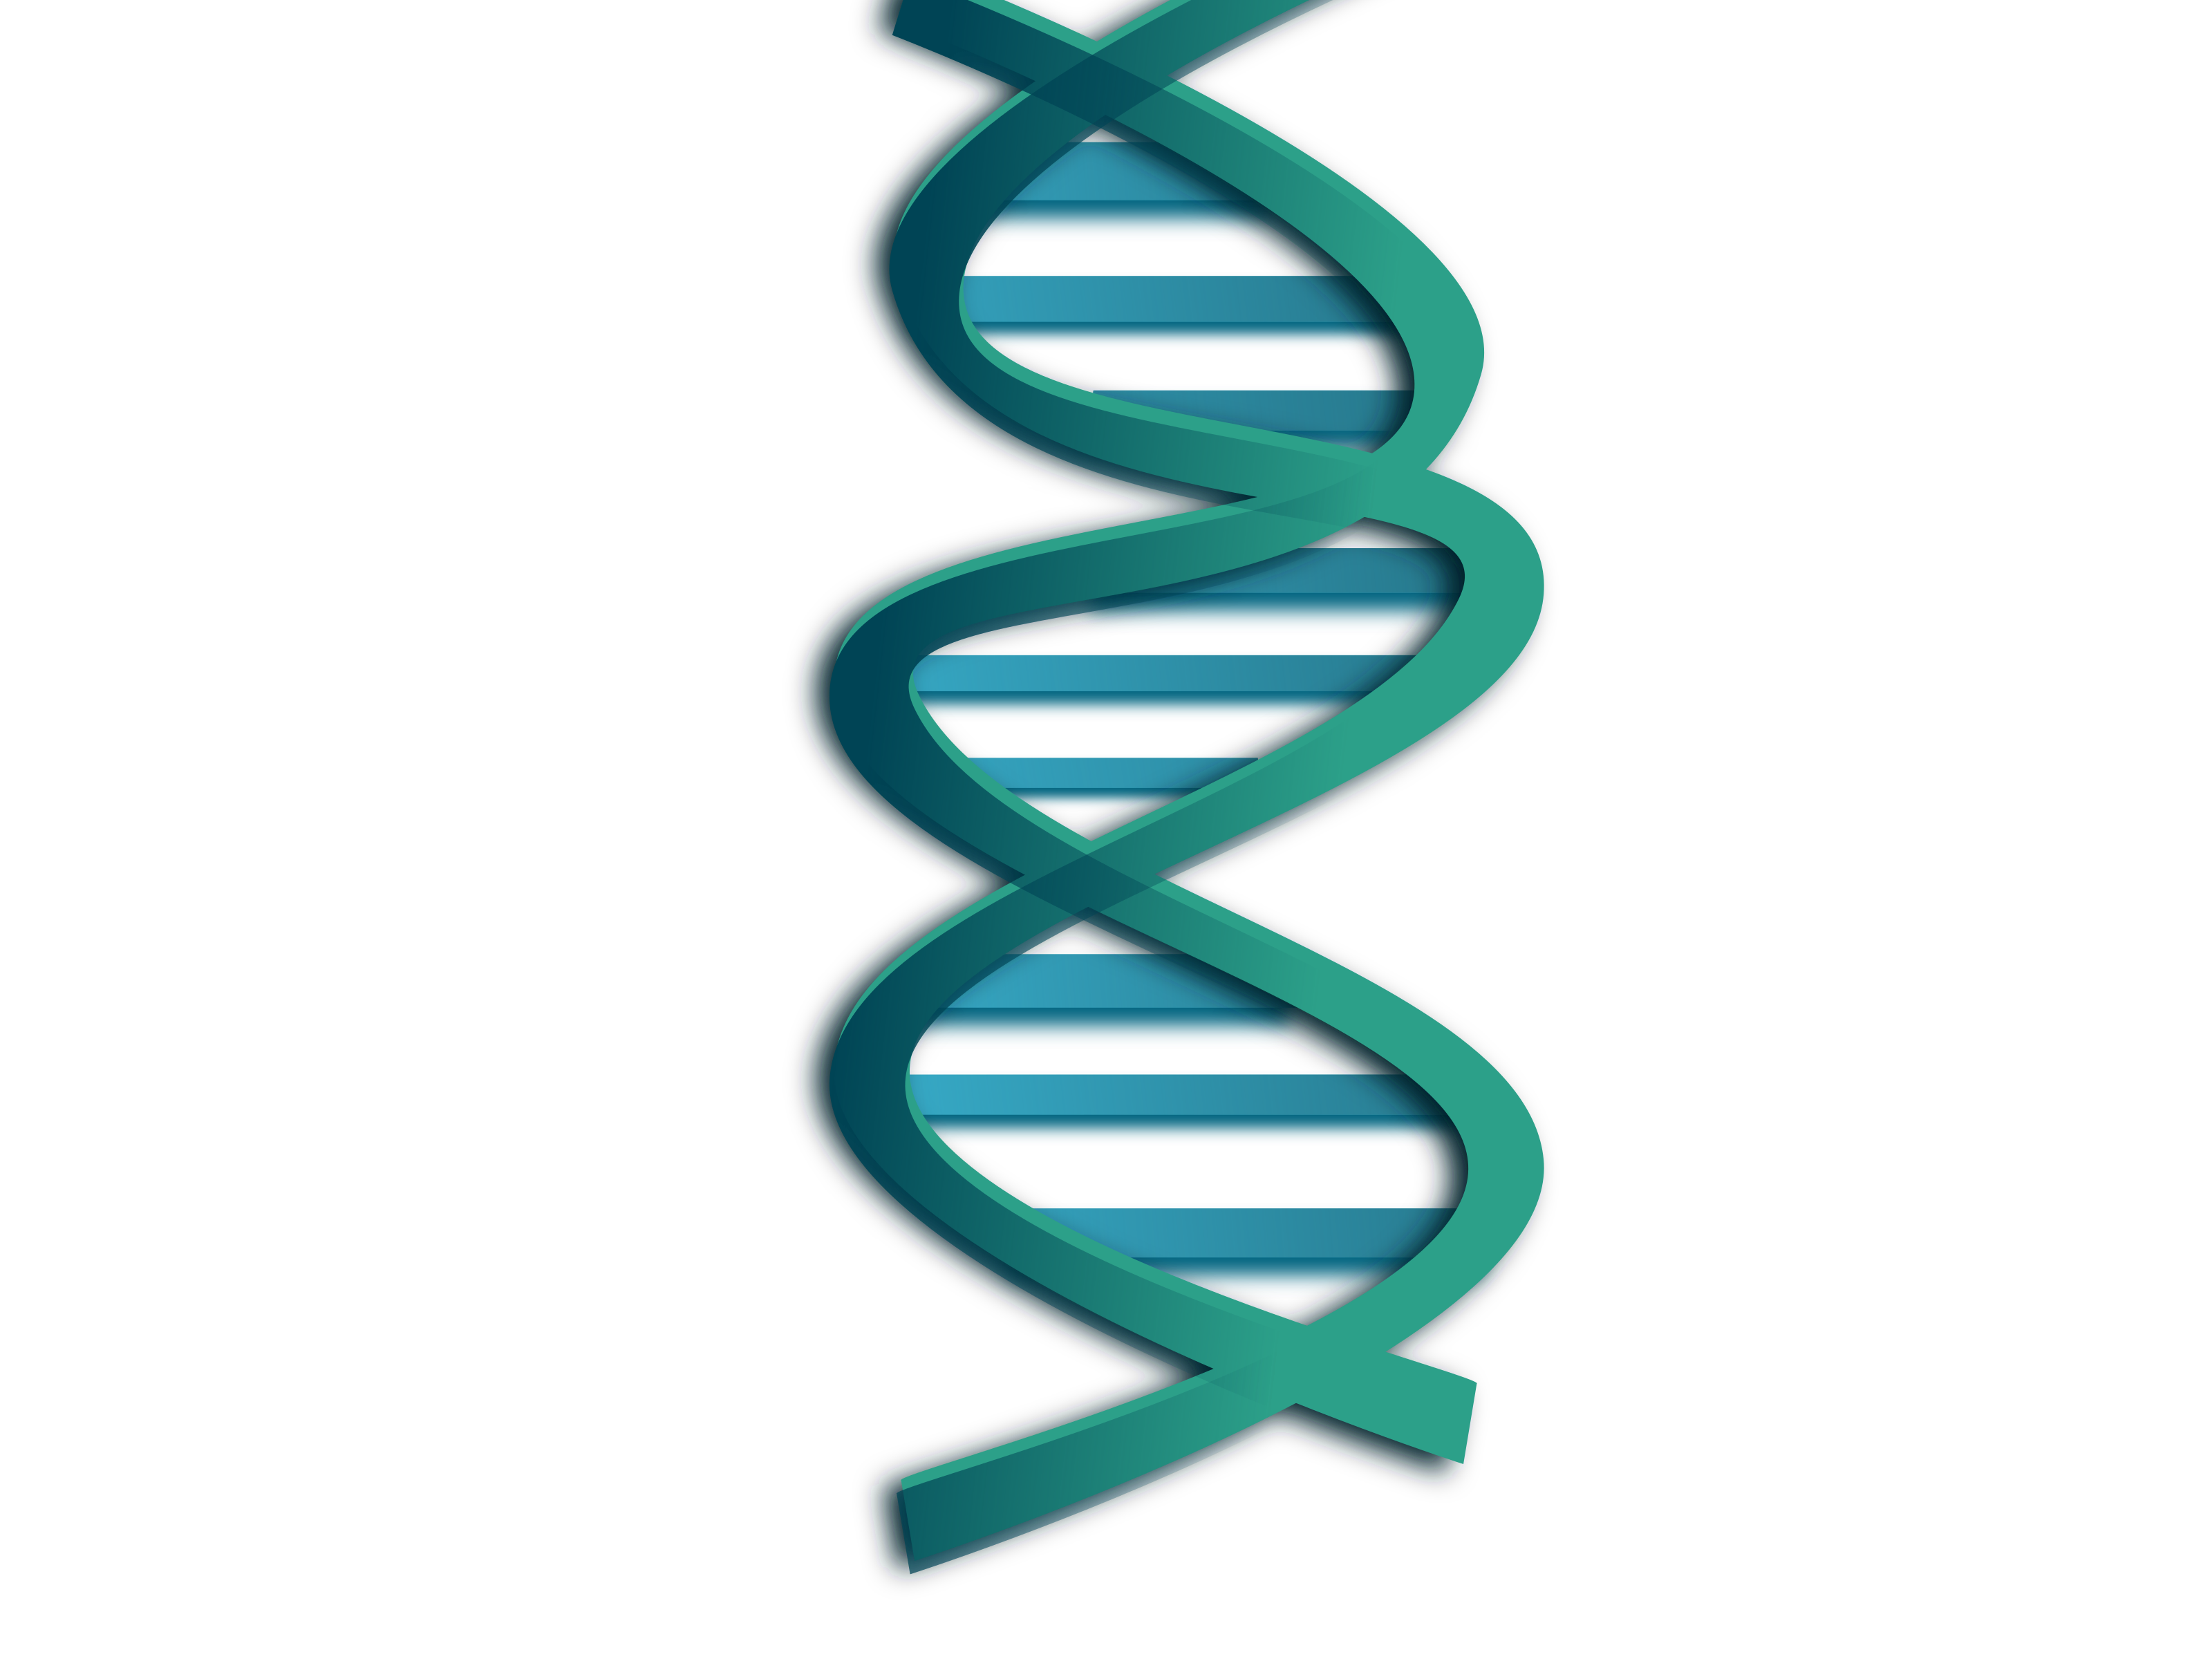 Transparent dna simple. Clipart big image png